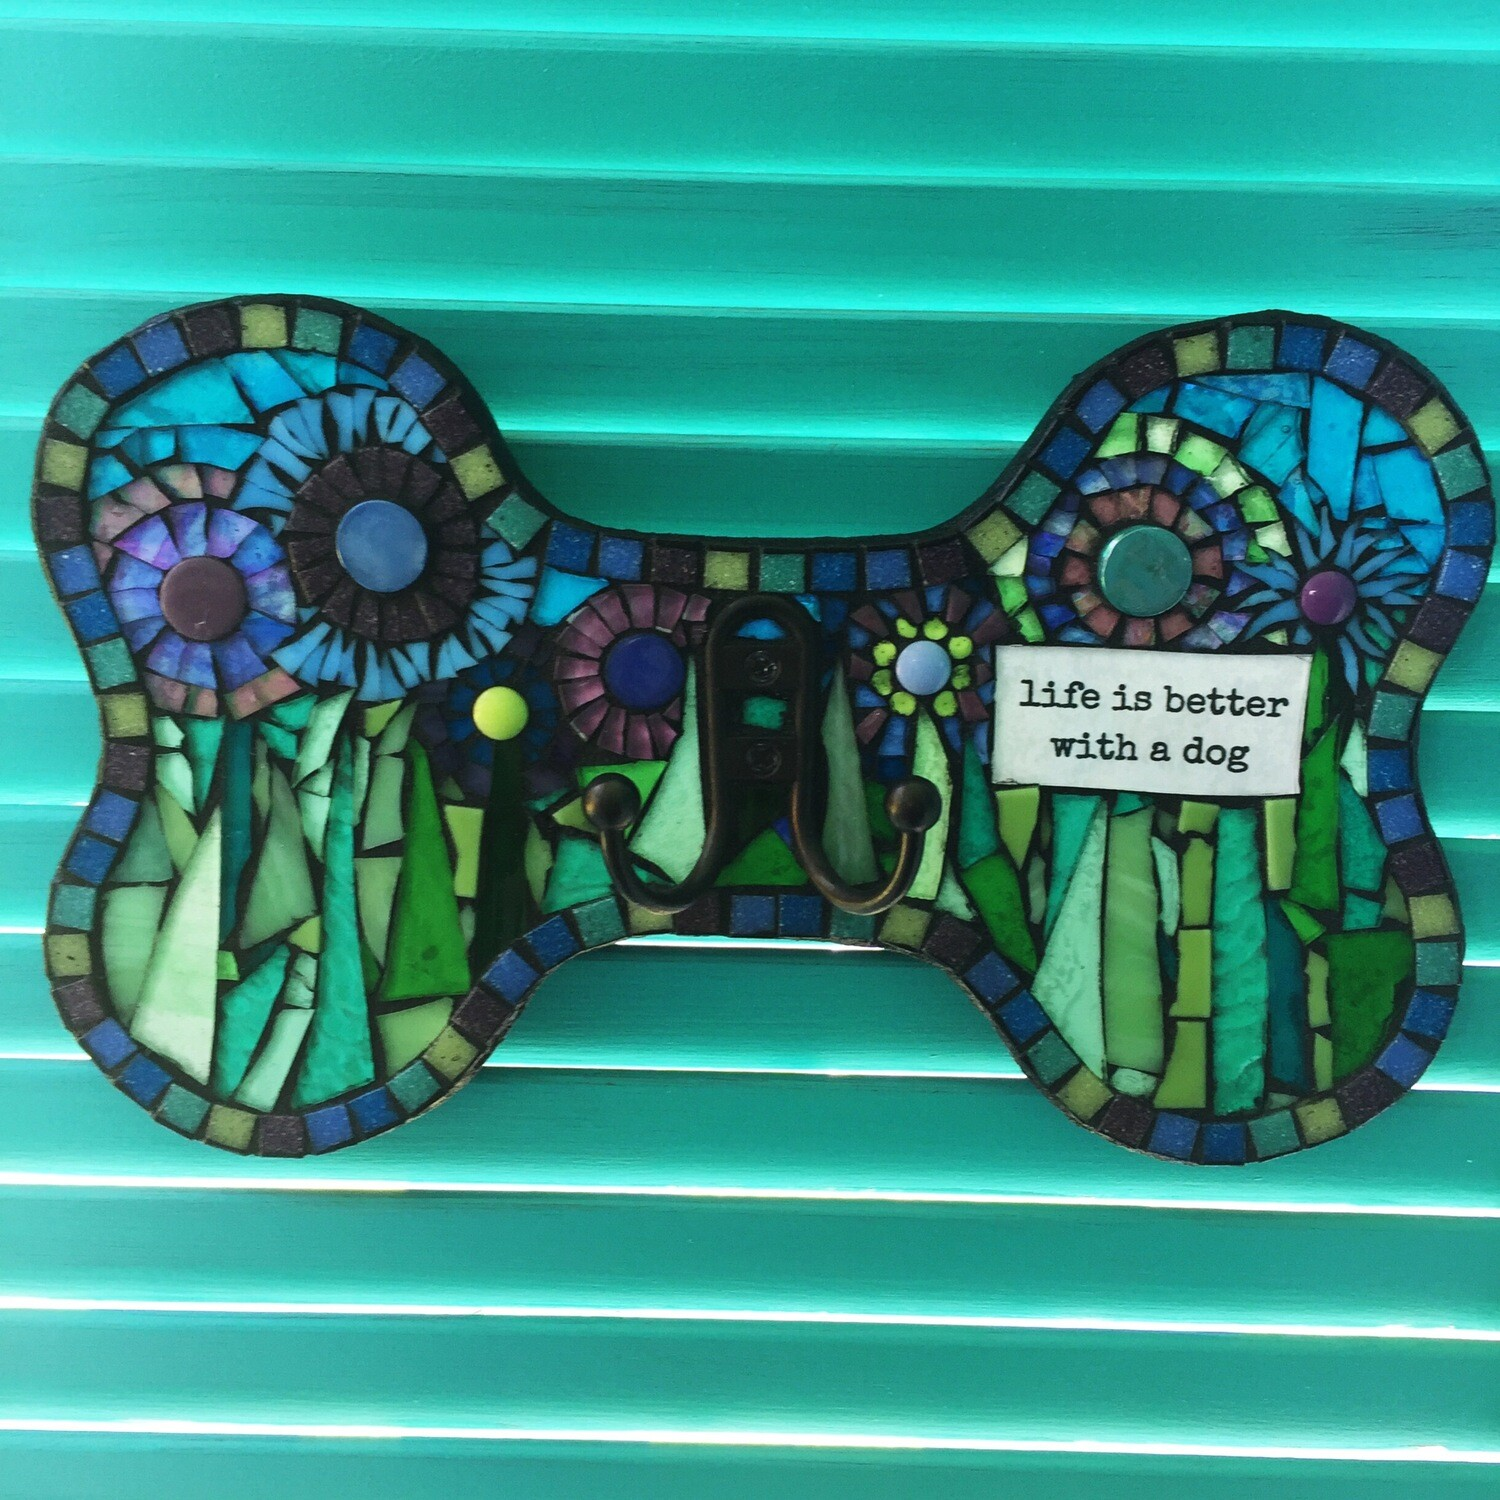 glass mosaic leash holder-life is better with a dog - floral